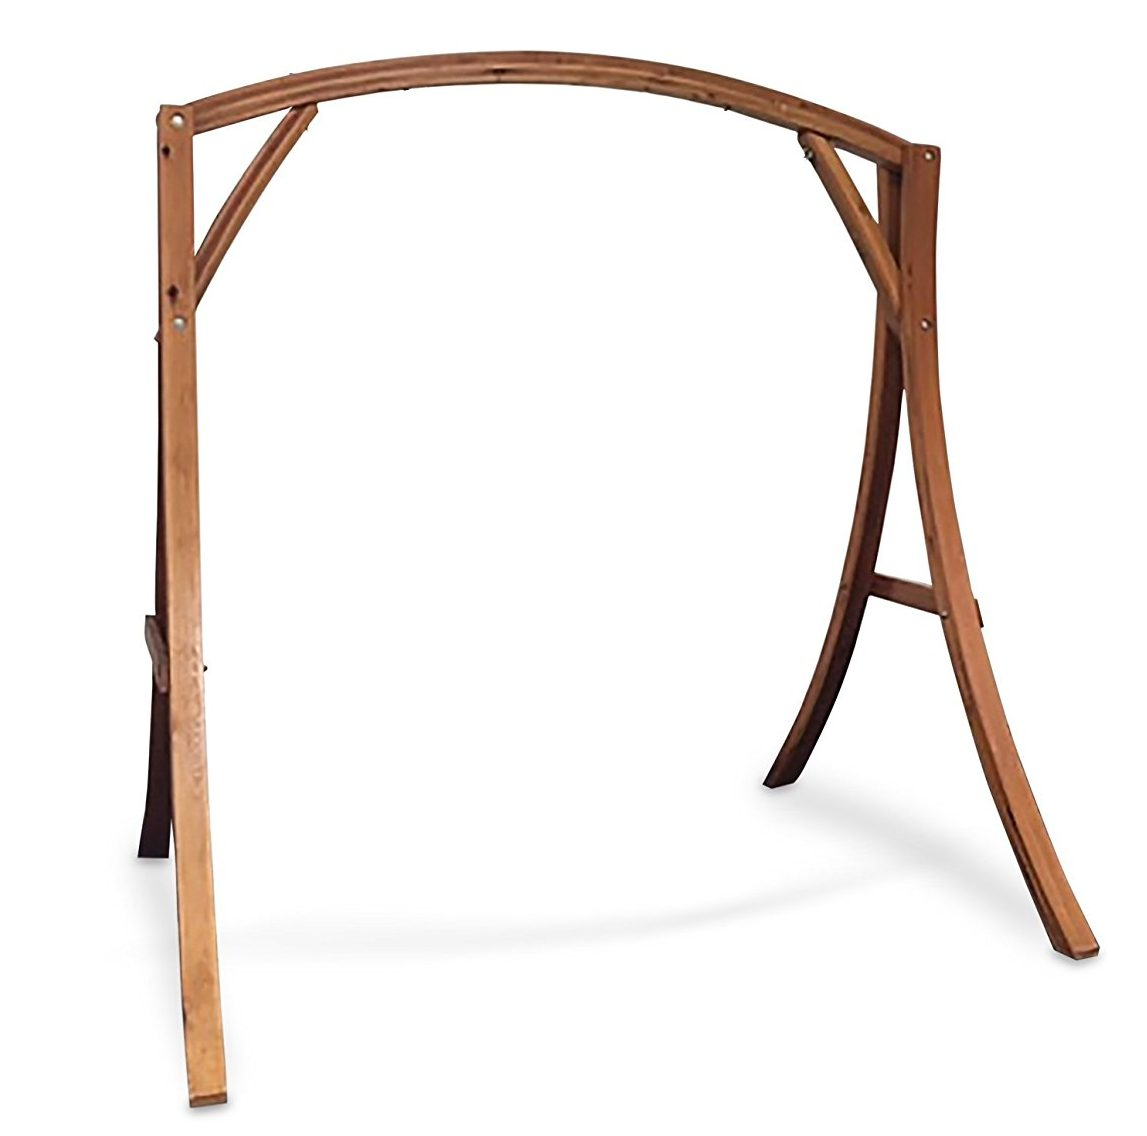 wooden-arch-wooden-hammock-chair-swing-stand